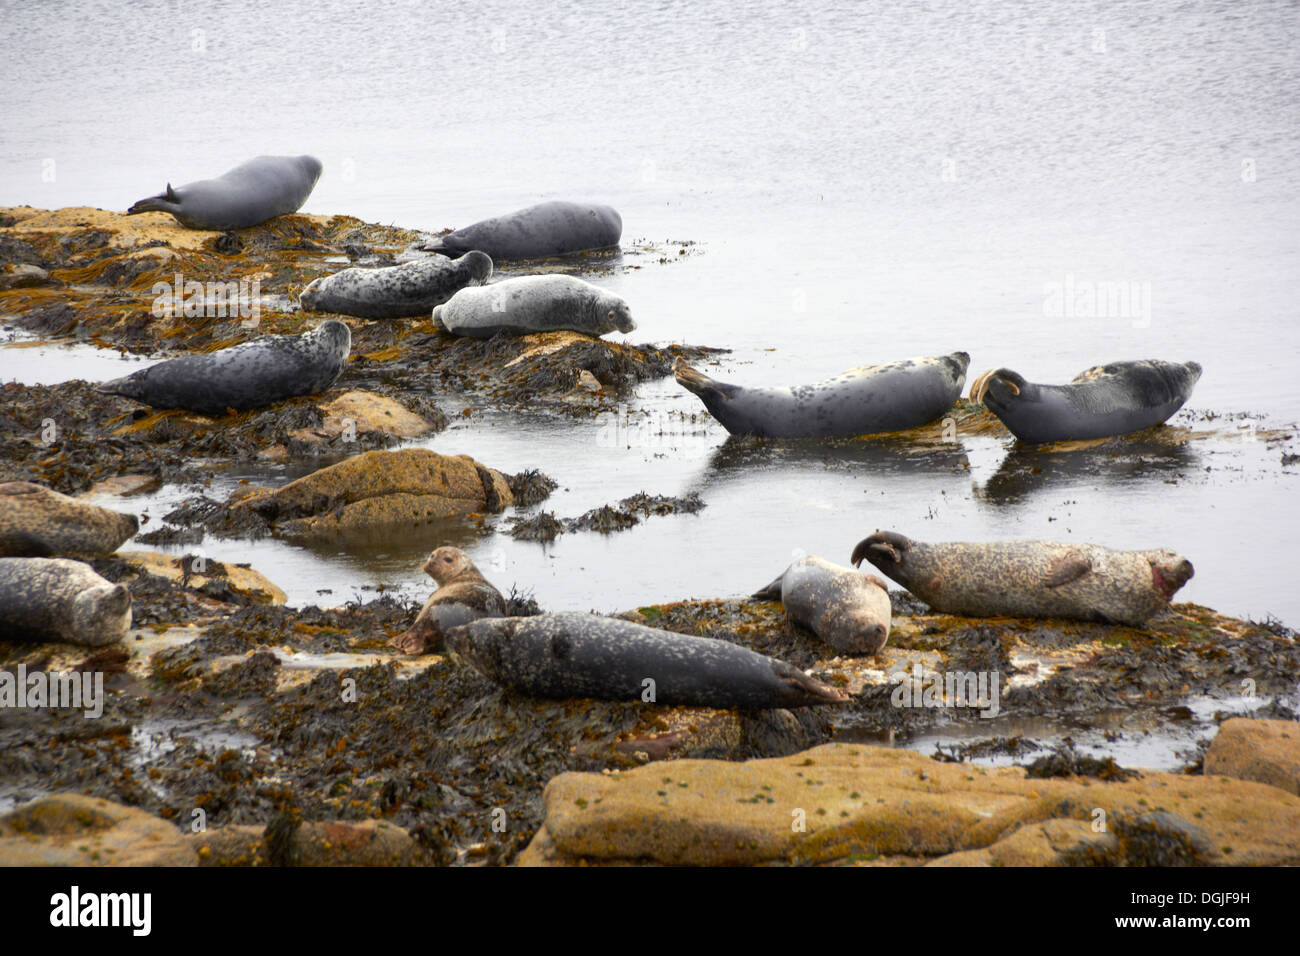 Seals basking on rocks. - Stock Image